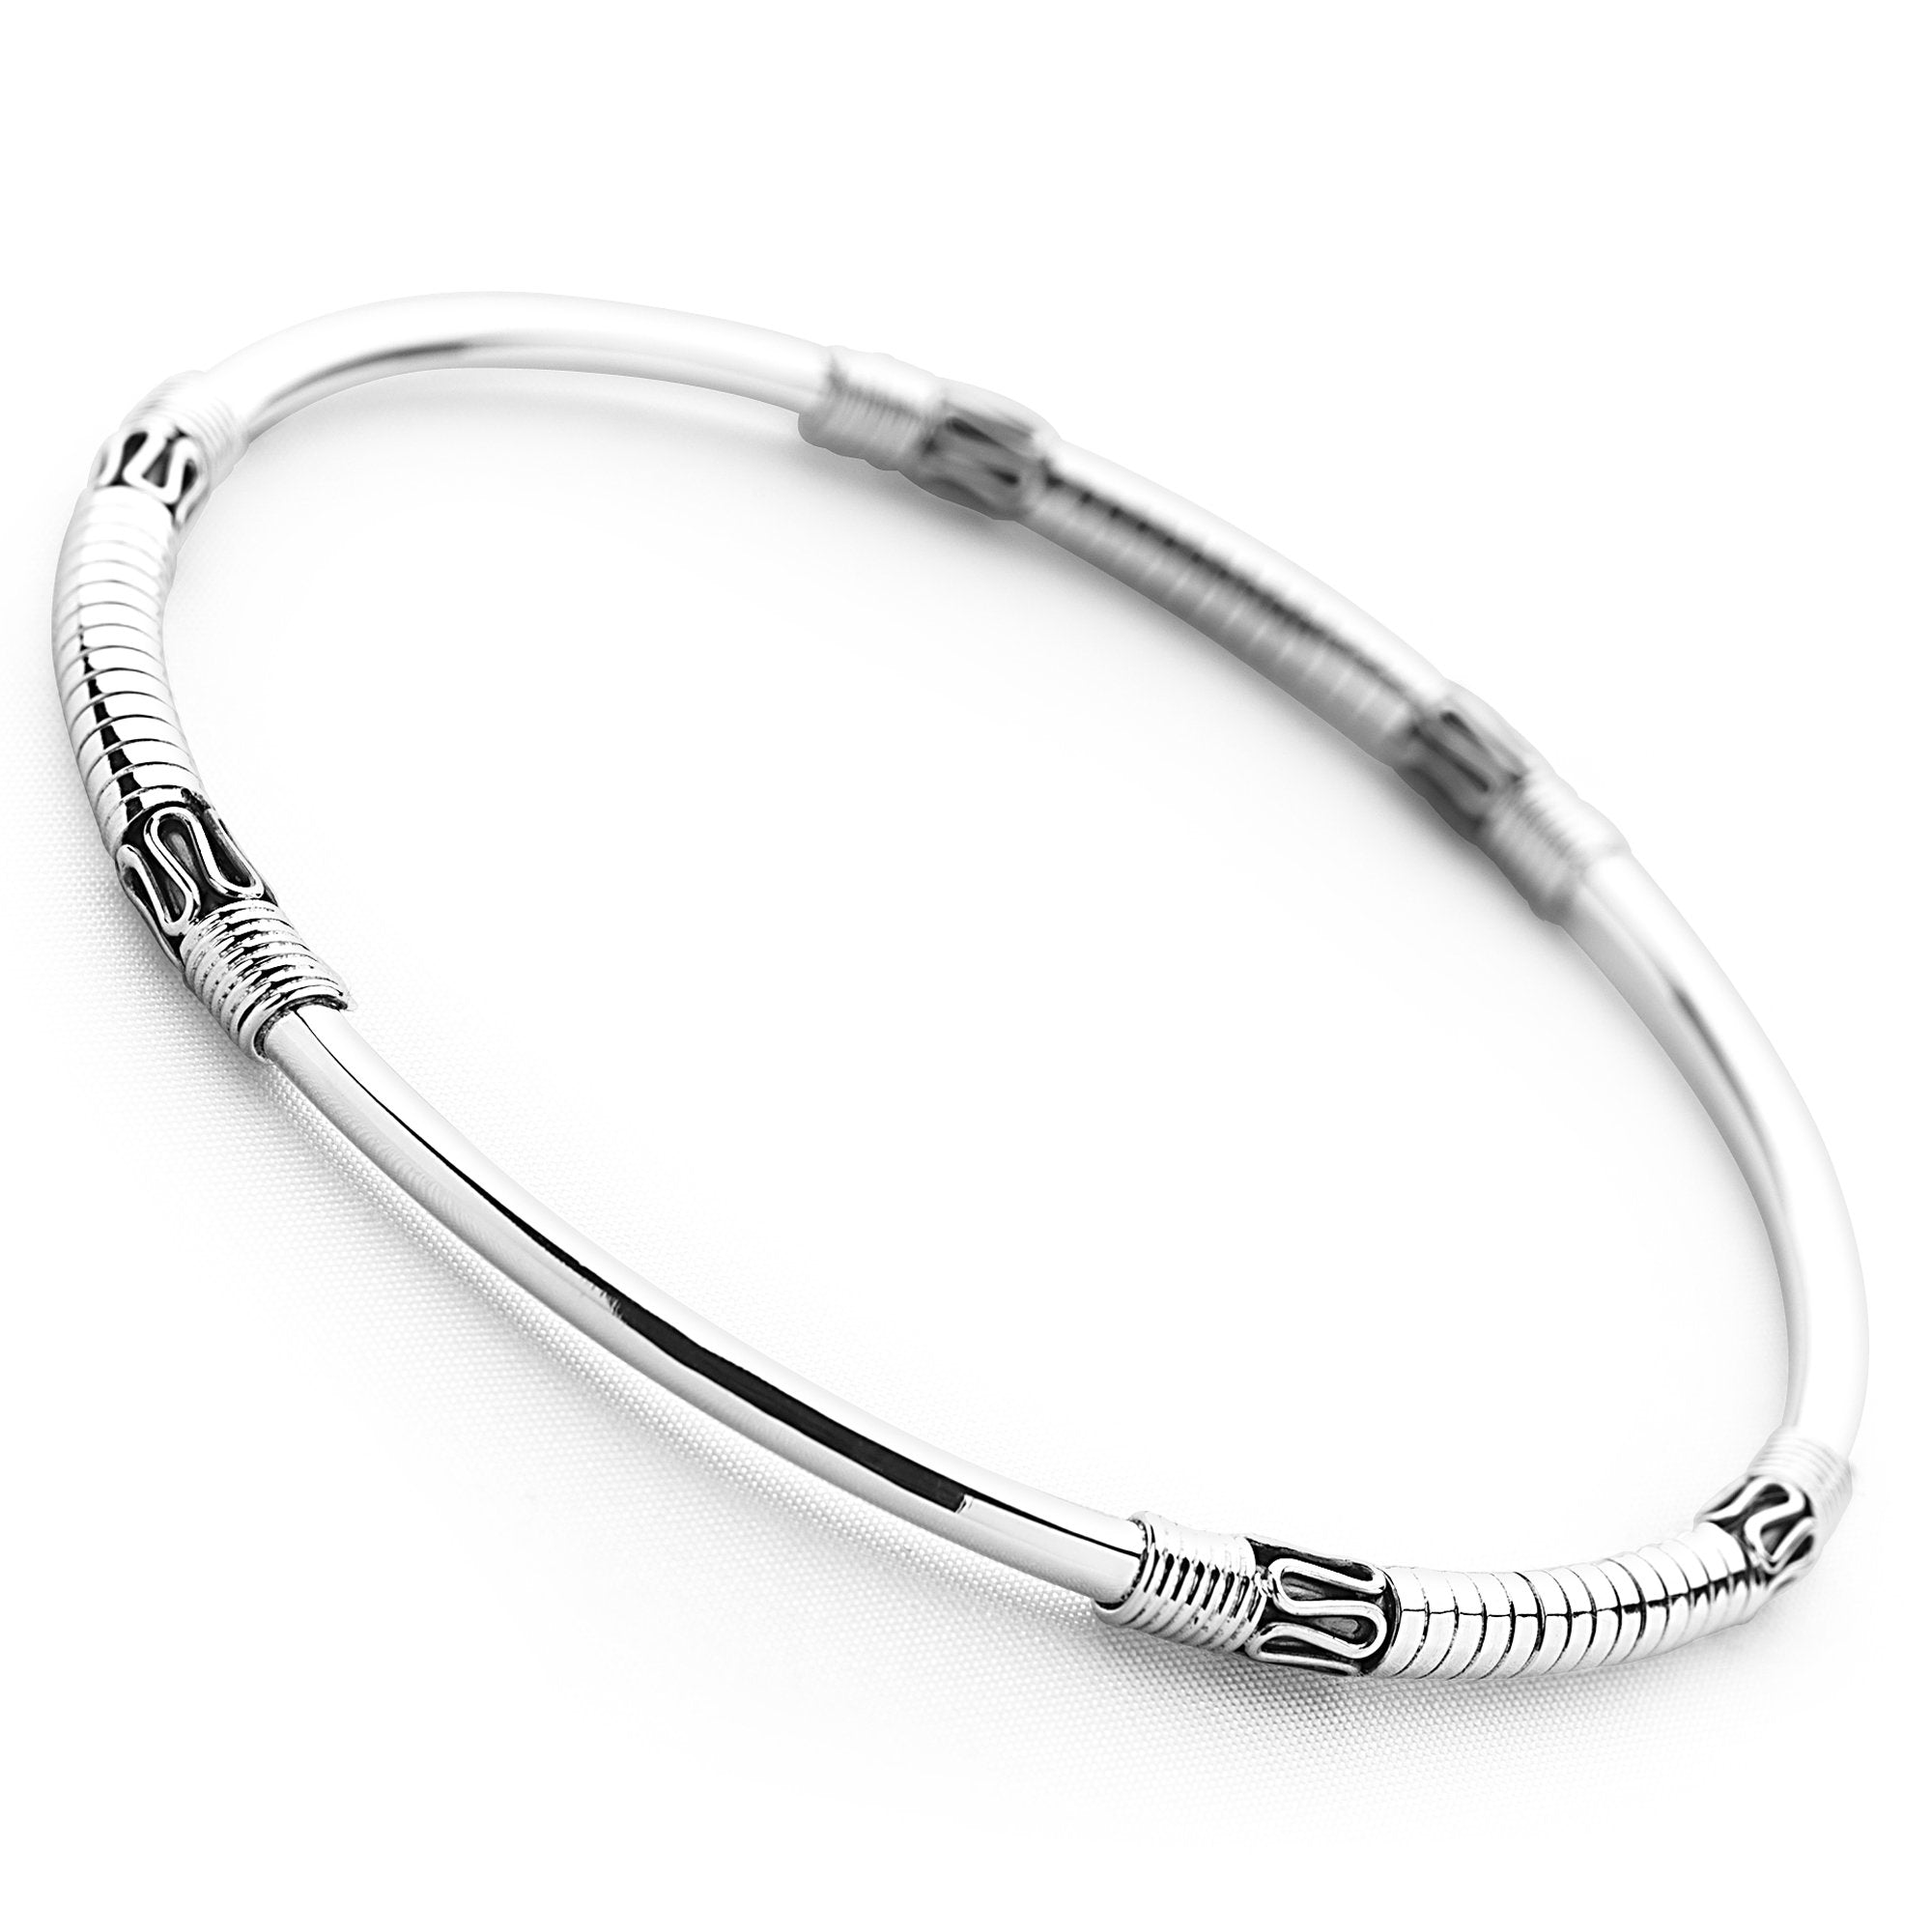 925 sterling silver artisan-crafted bangle (BGL1141)